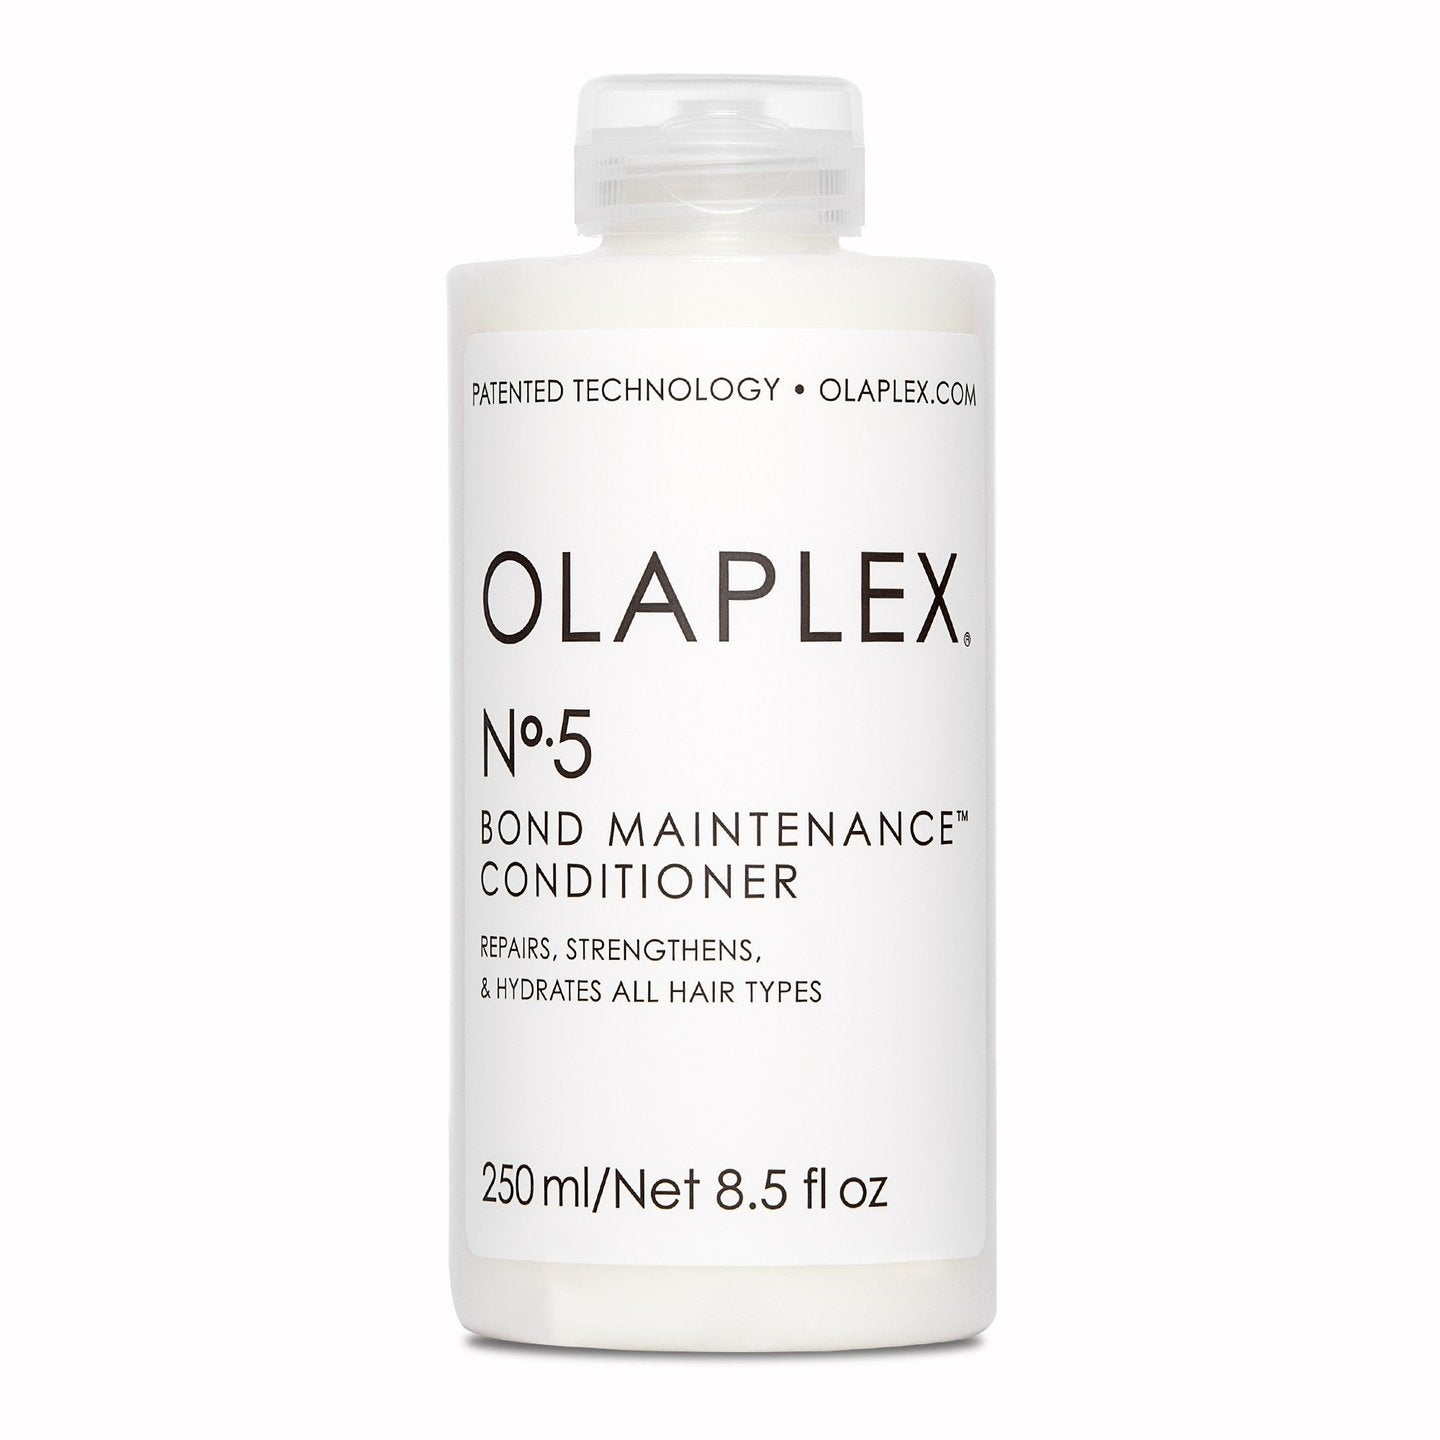 N°5 Bond Maintenance Conditioner